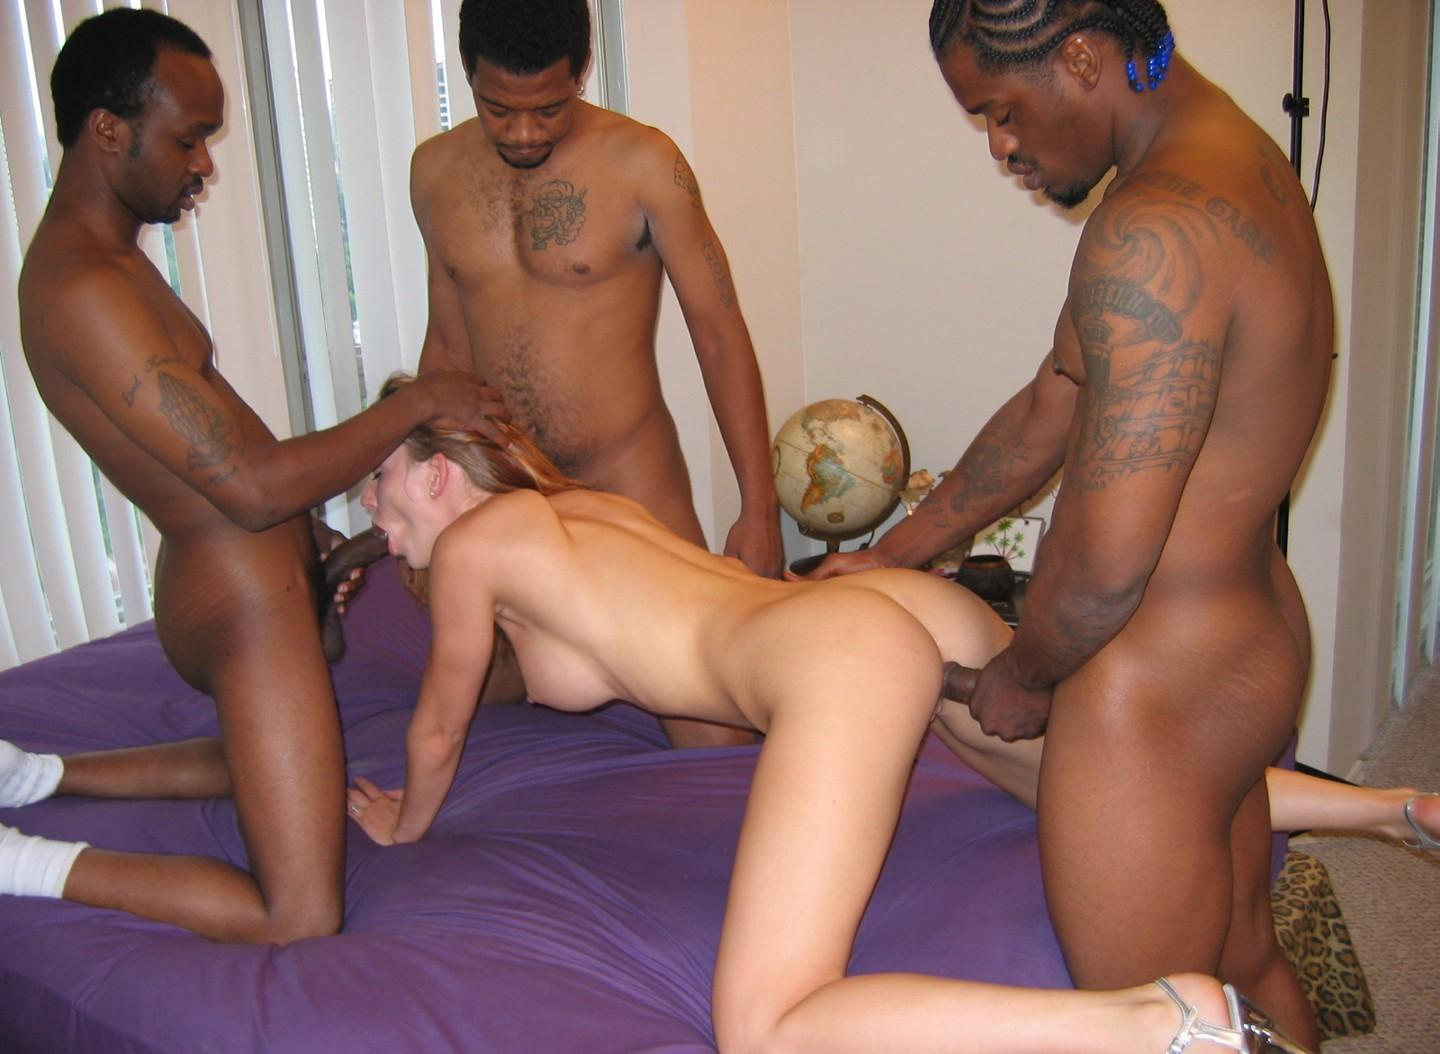 yet more rough sex, mostly interracial, hair pullt - motherless